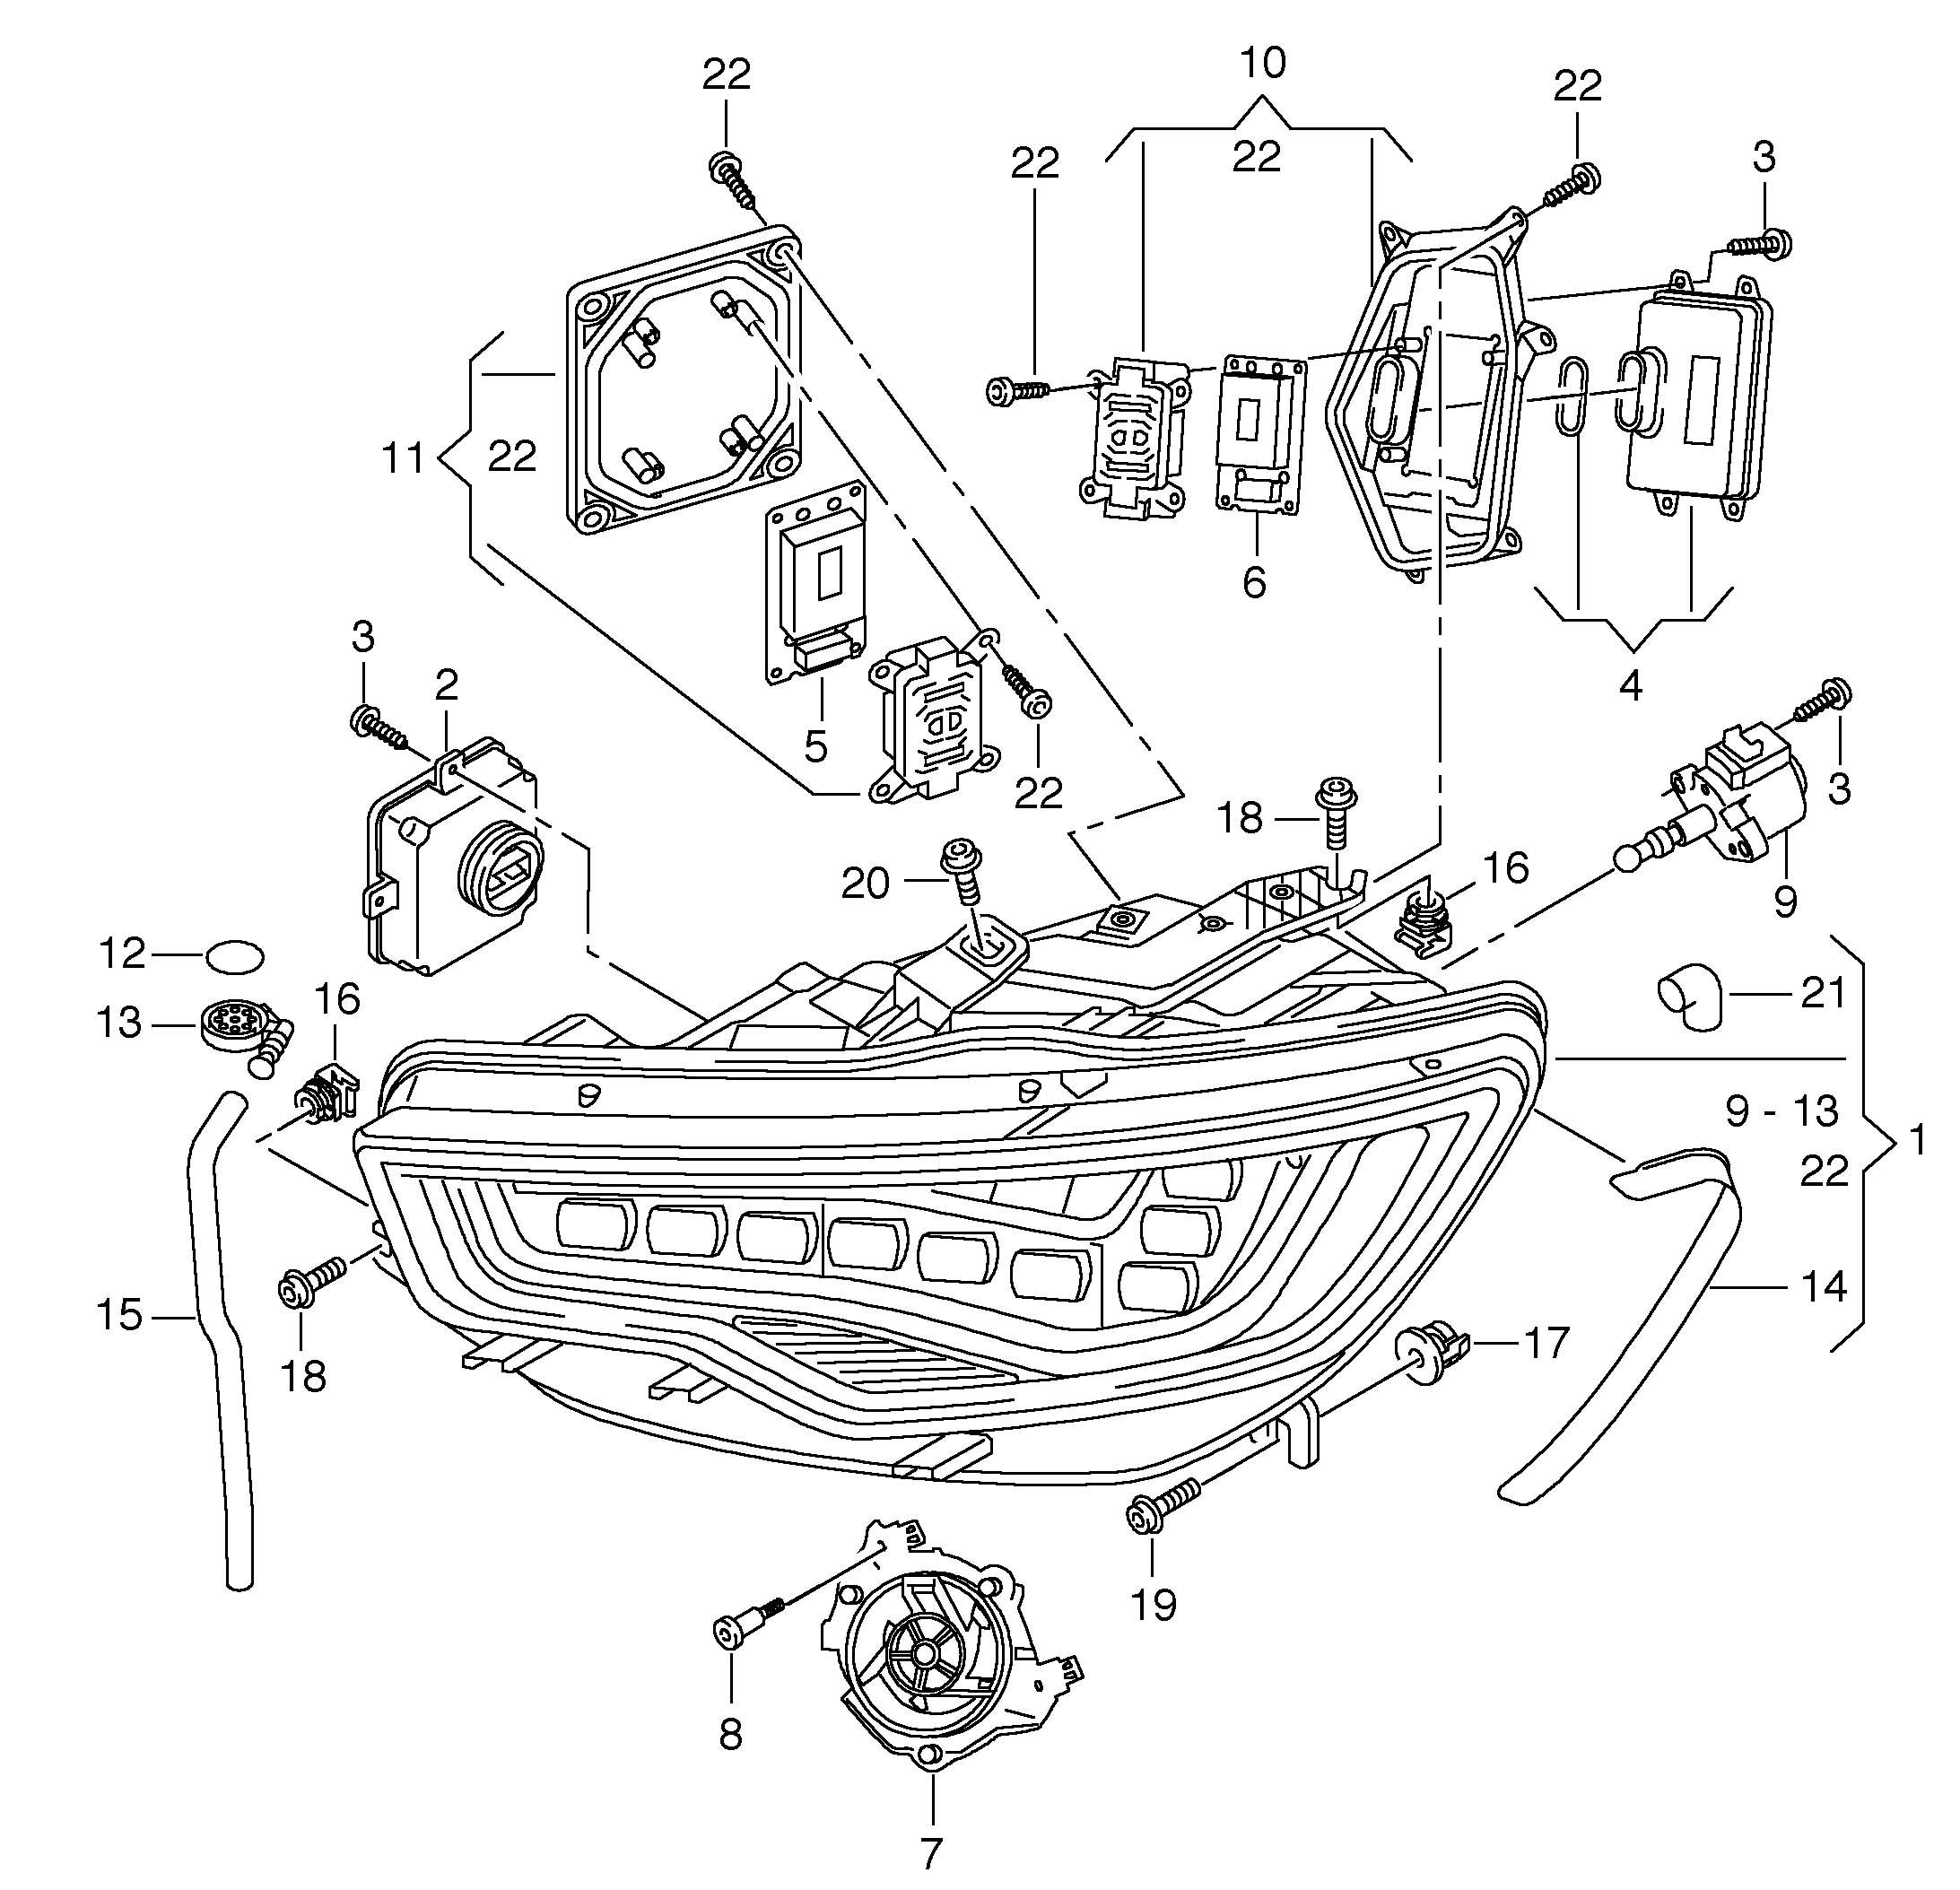 medium resolution of image result for audi a7 2012 led headlight wiring diagram